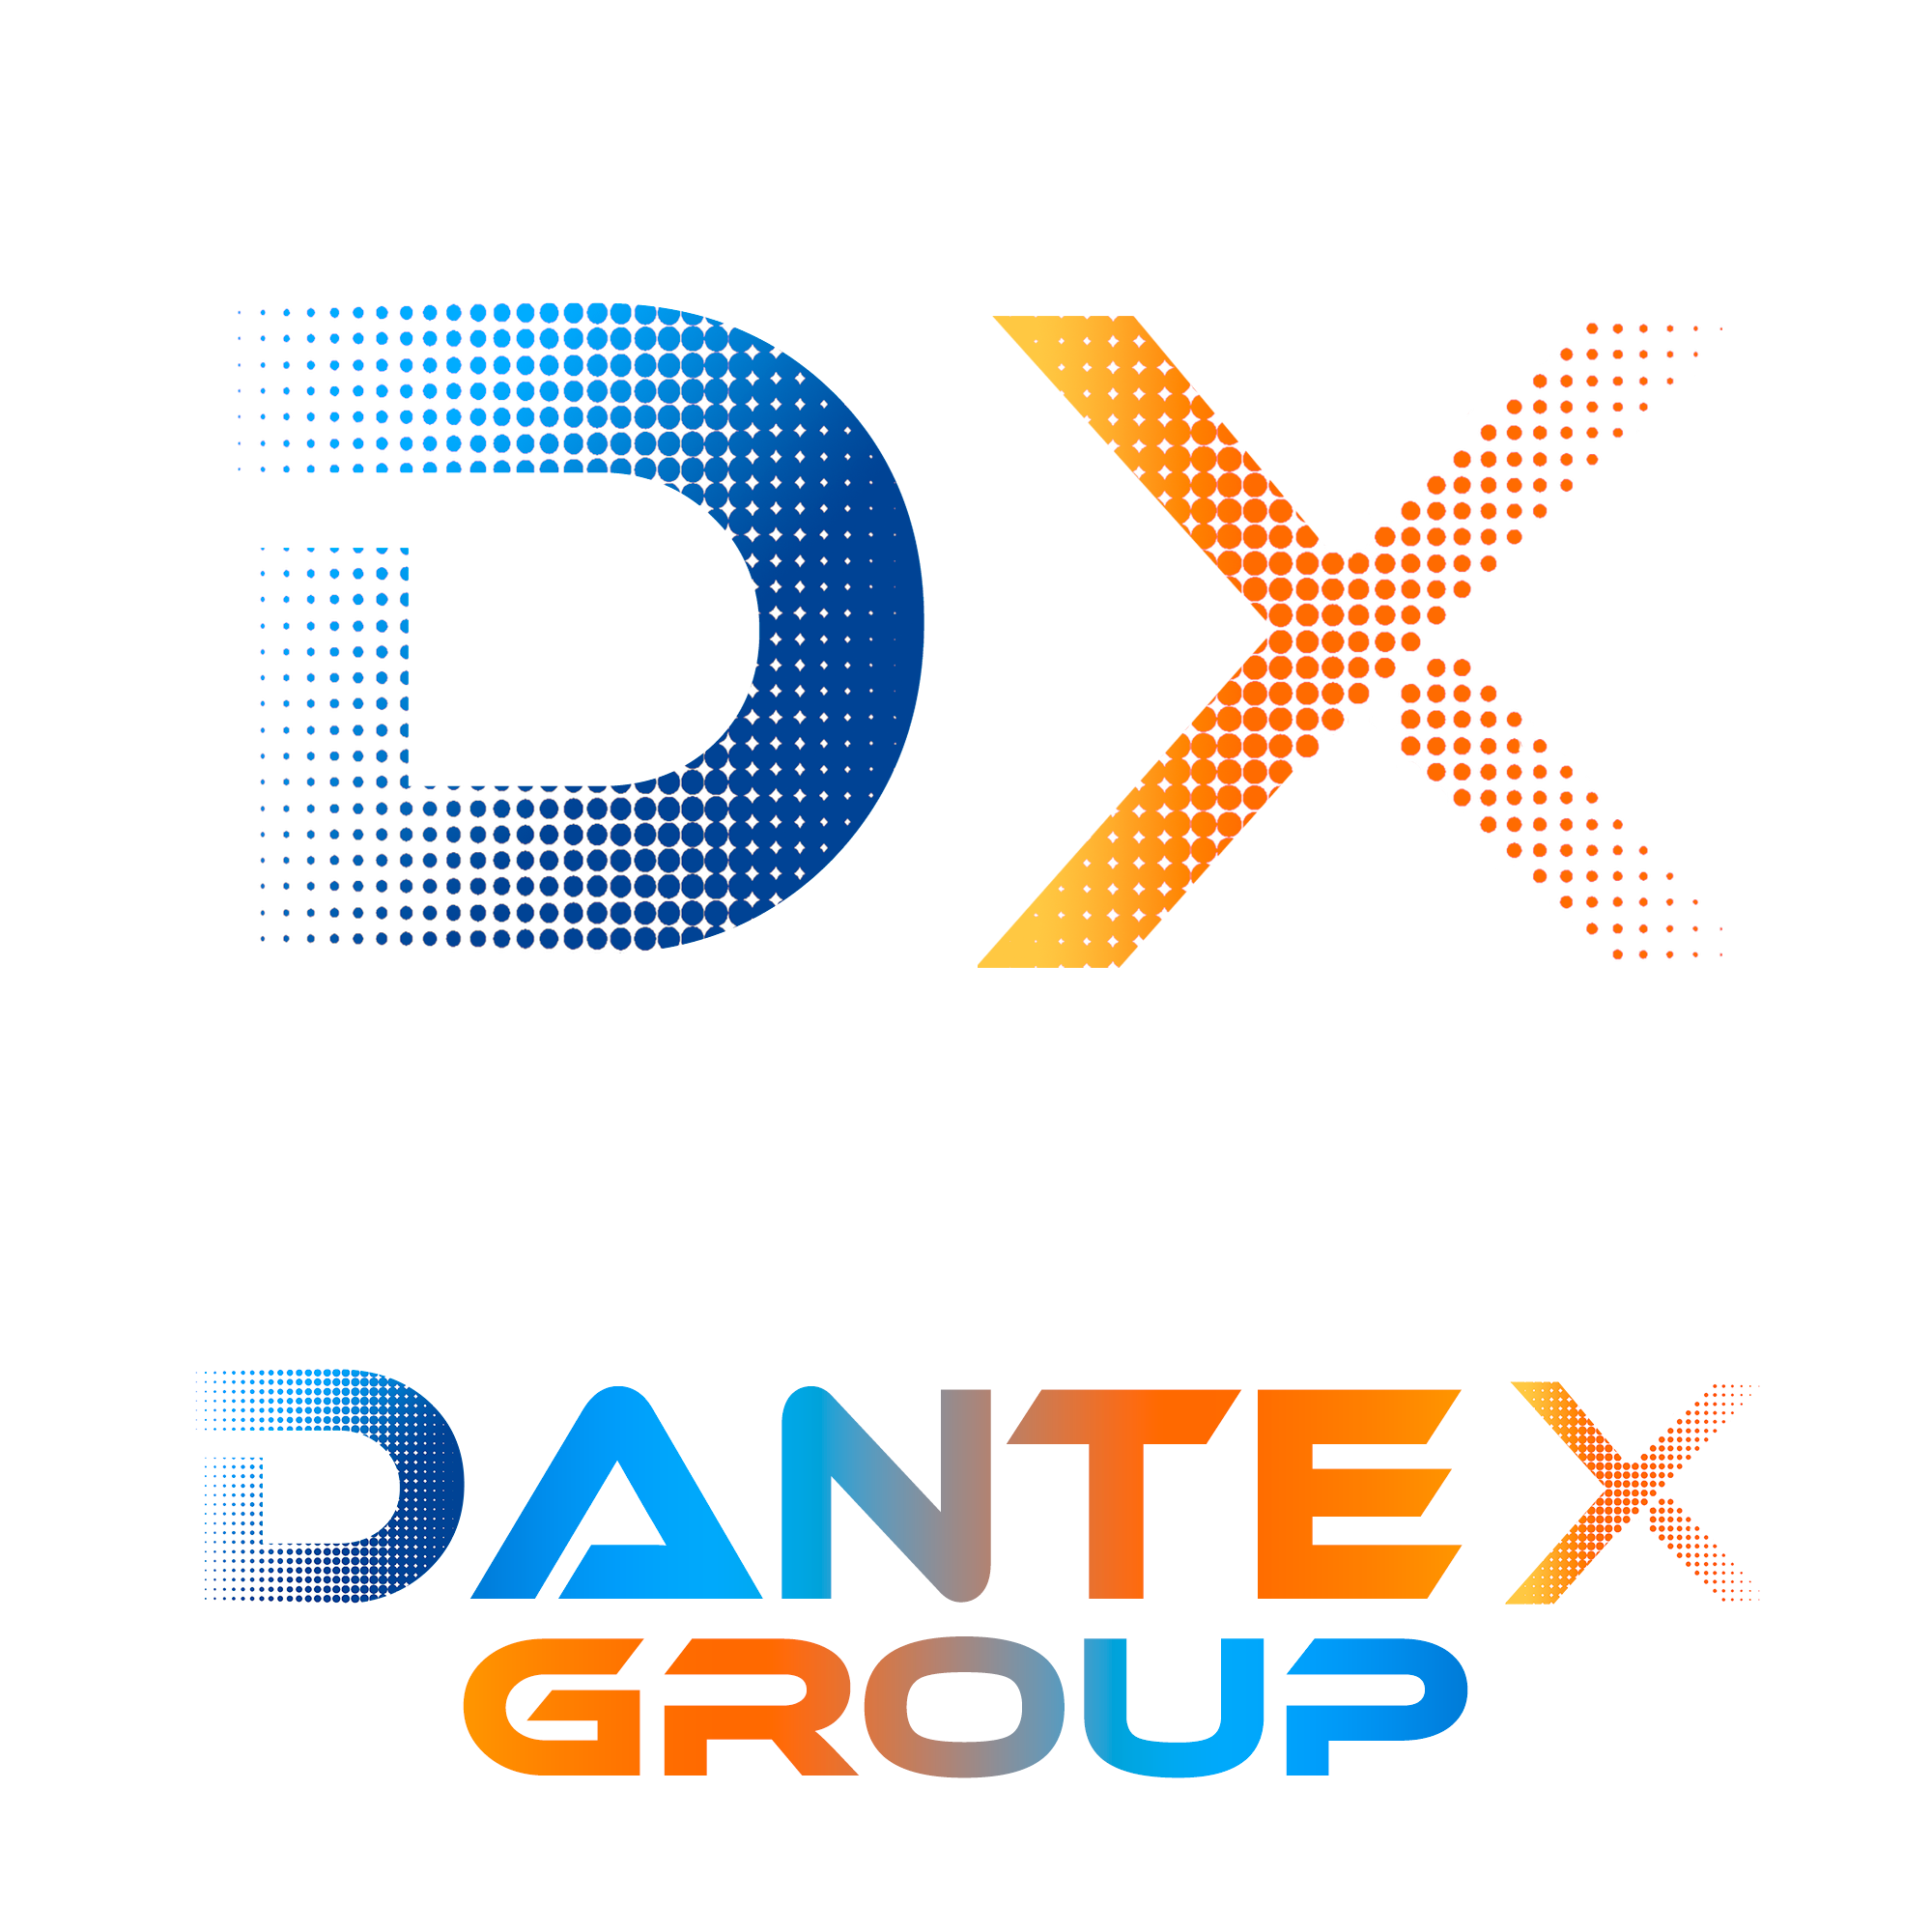 Конкурс на разработку логотипа для компании Dantex Group  фото f_7635bfeec7935fe4.png